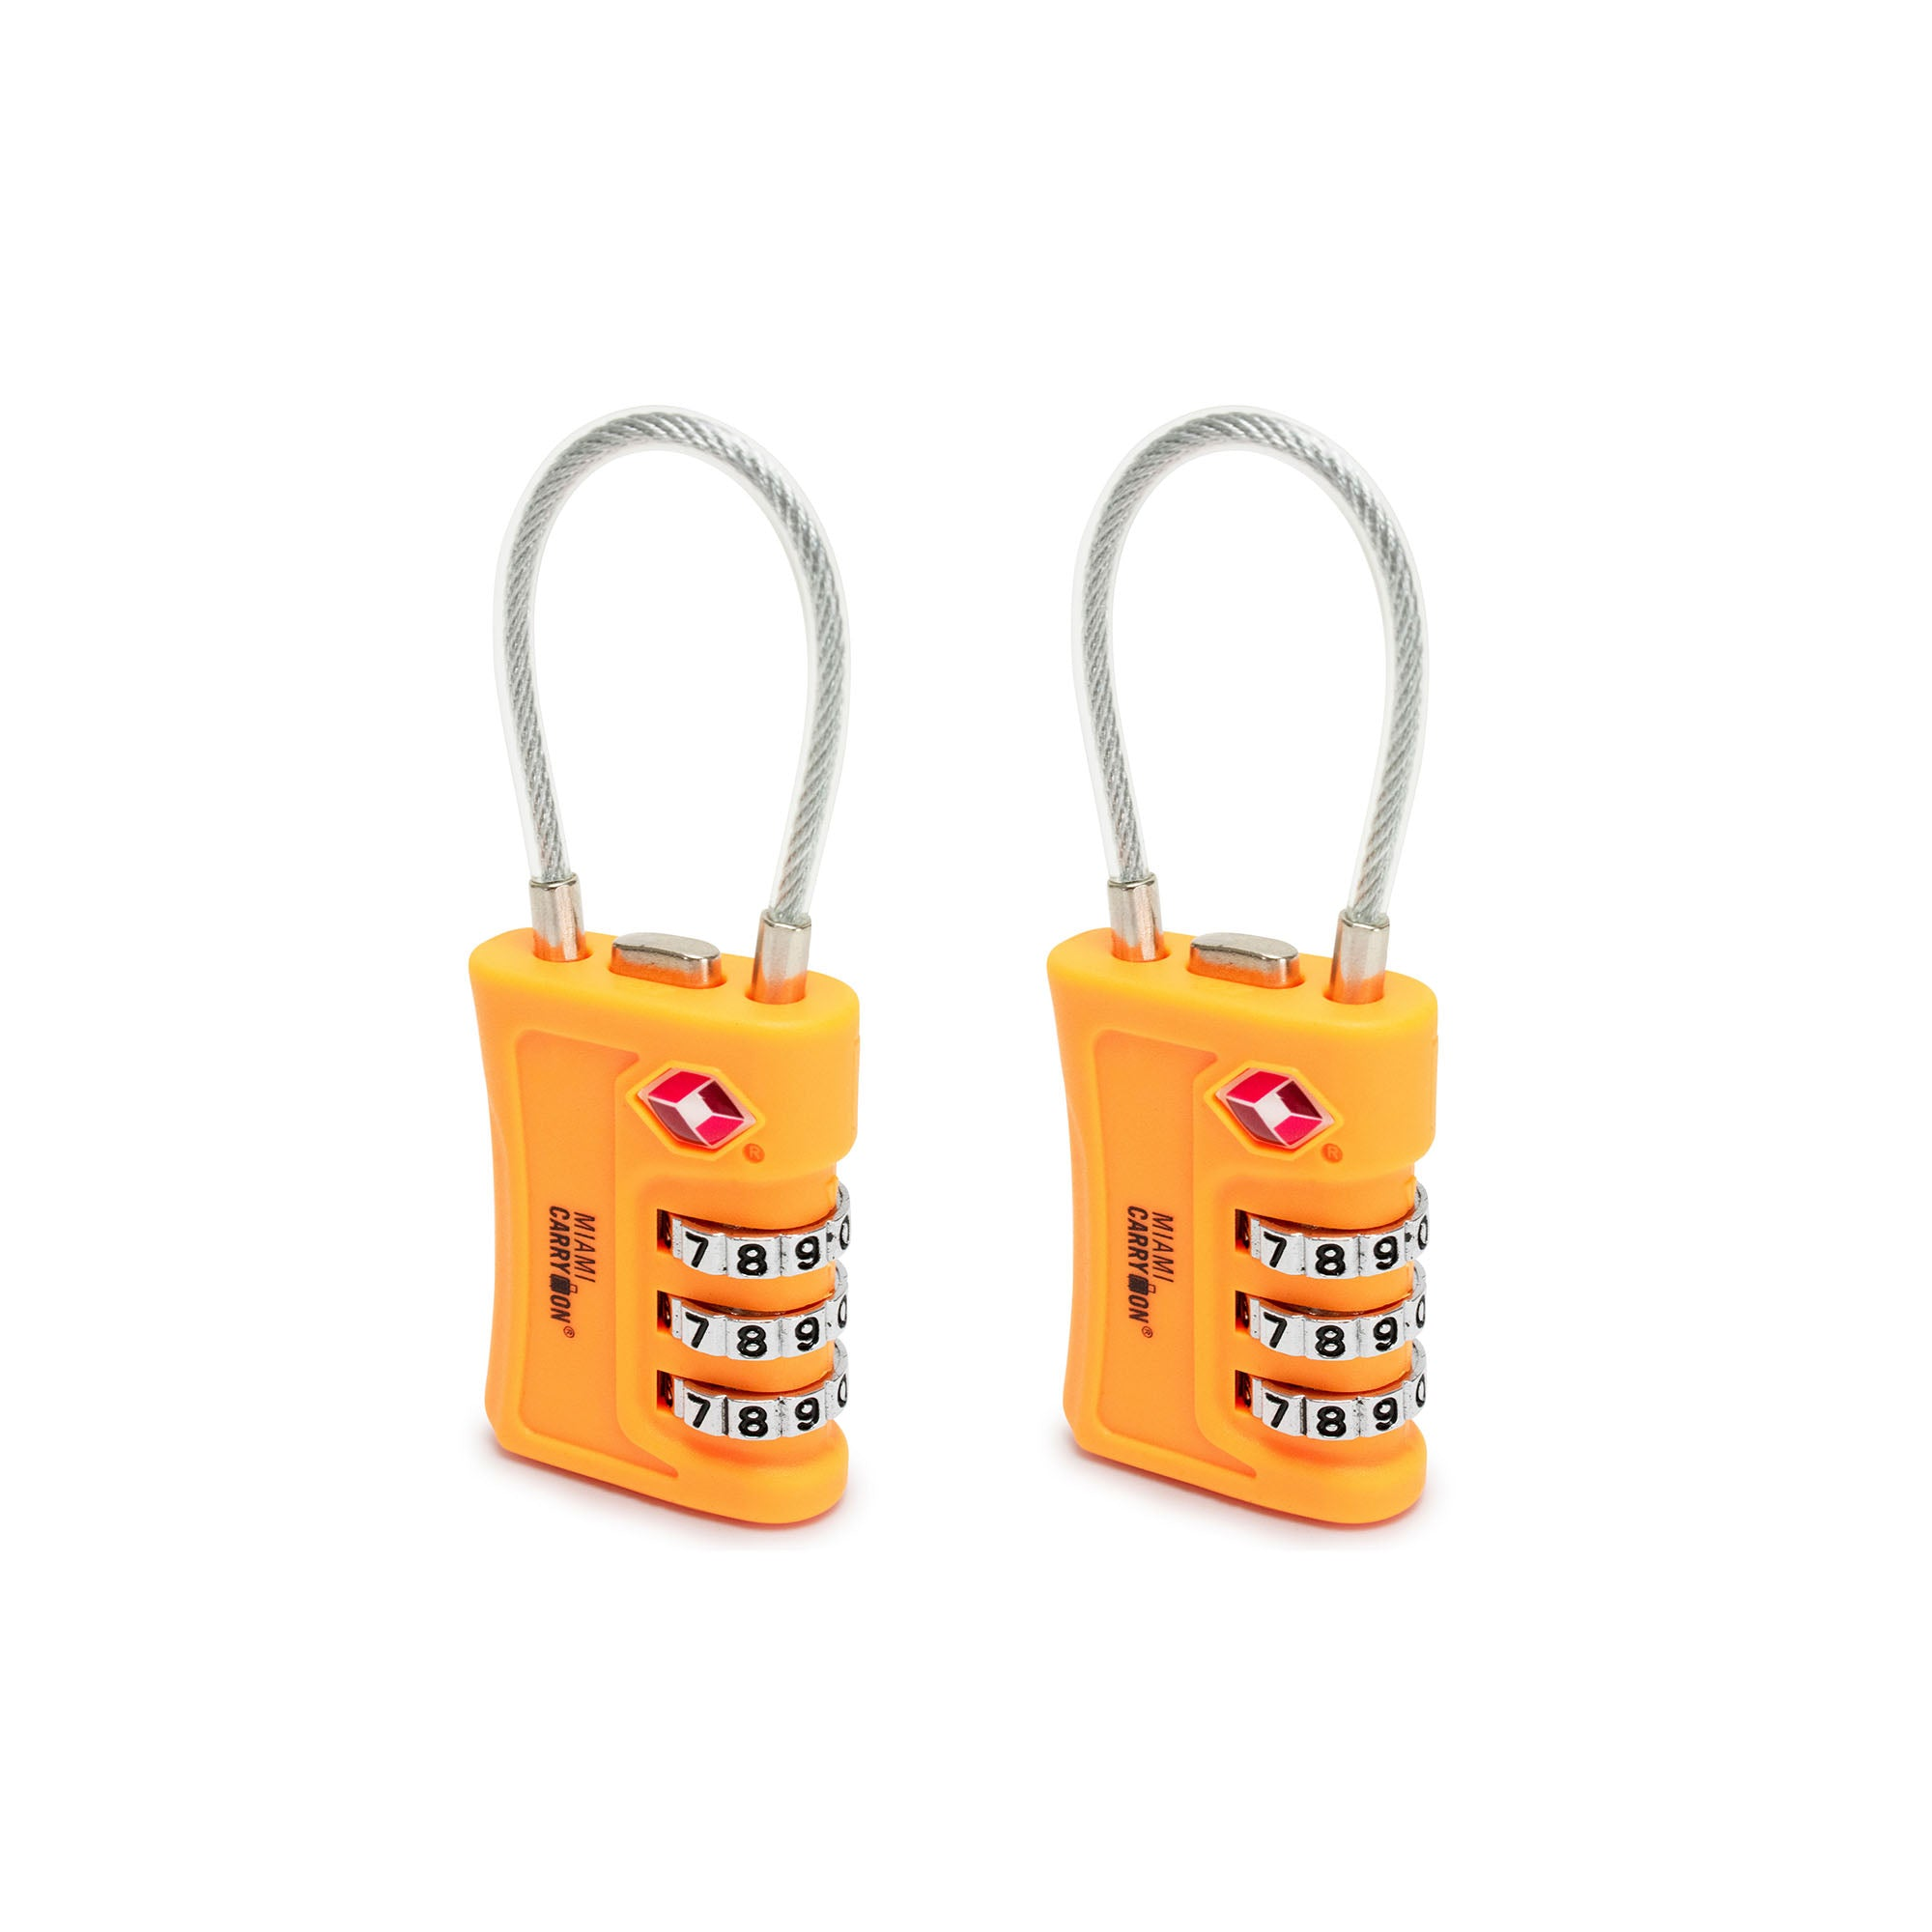 TSA Approved Cable Combination Padlock [VALUE SET] - Orange / 2 Pack - Travellty